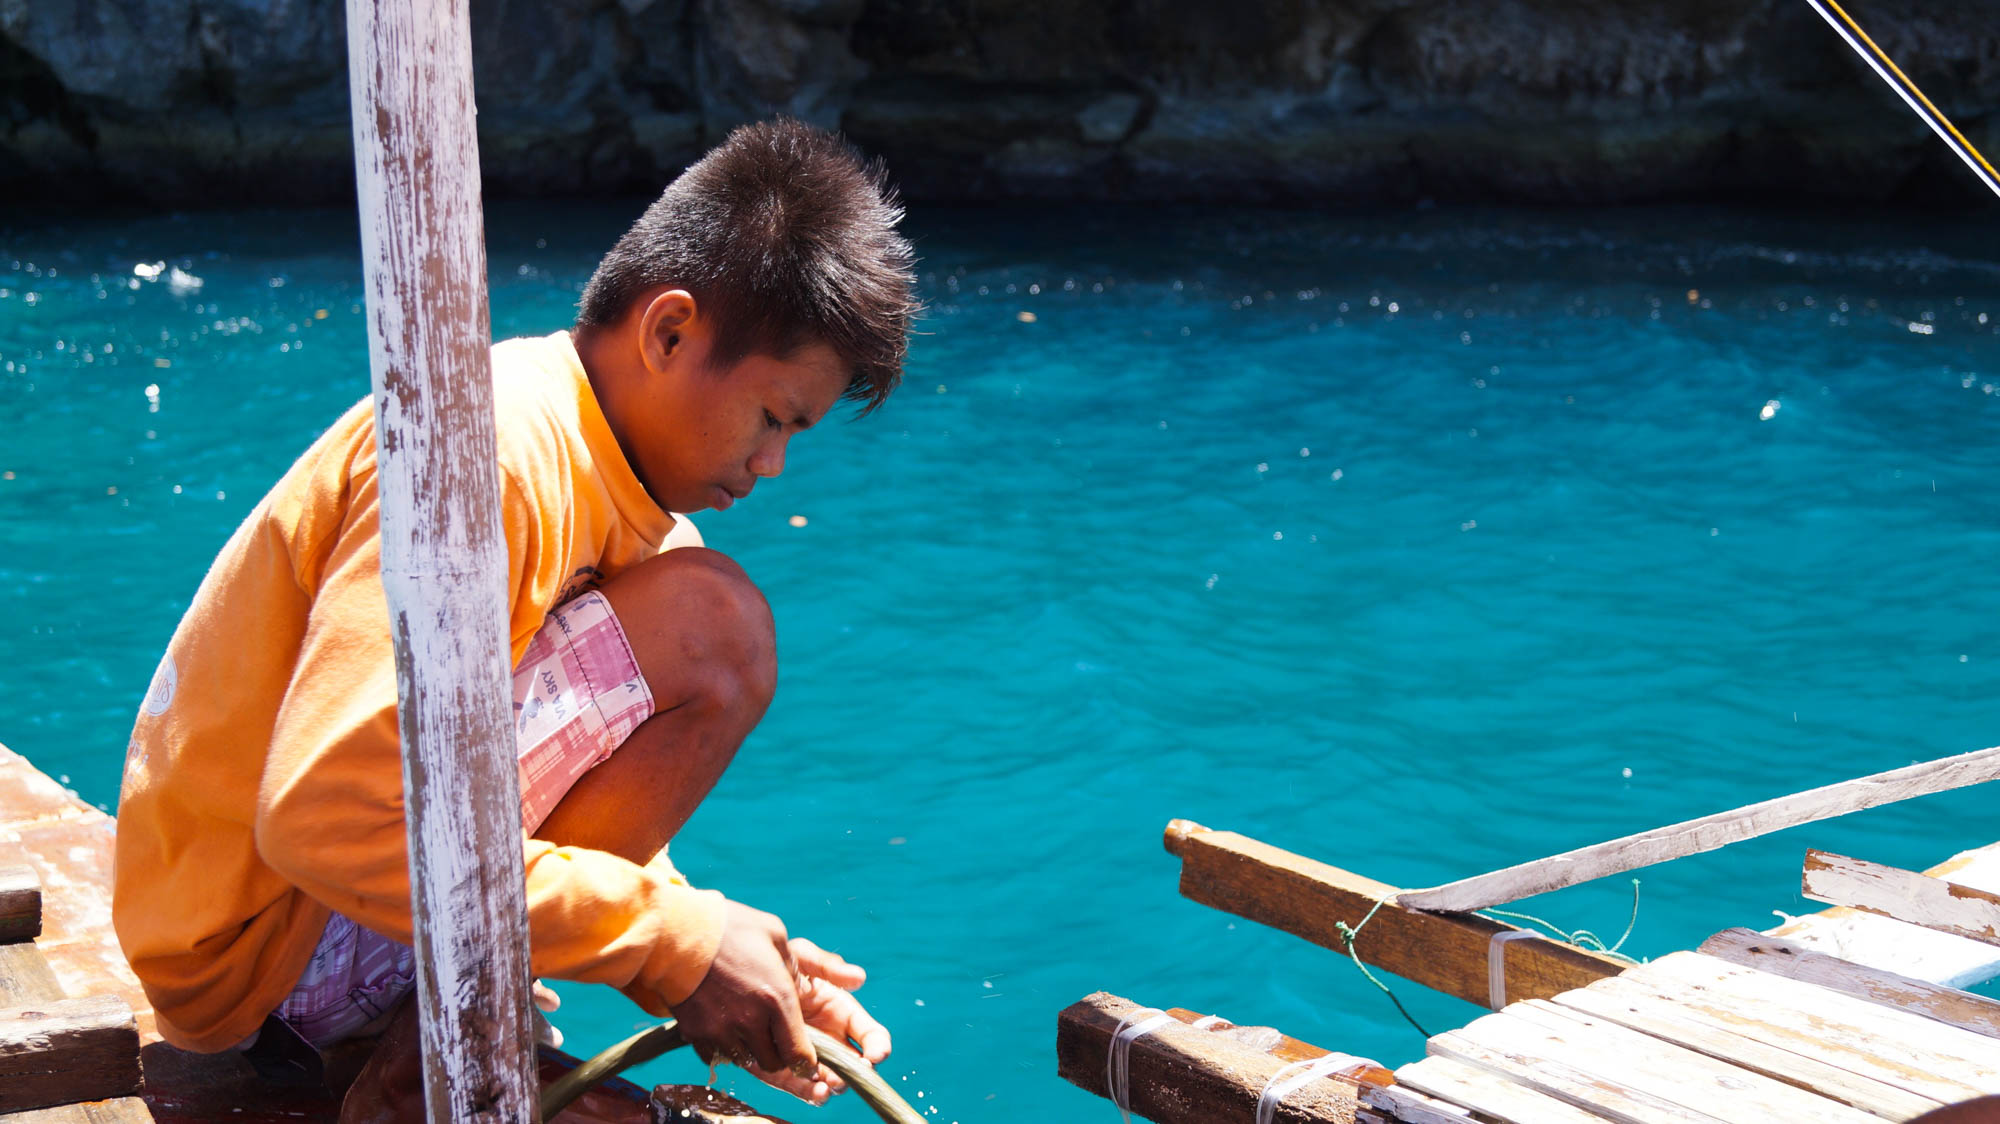 Islas de Gigantes - Local kid on bangka - Philippines - illumelation